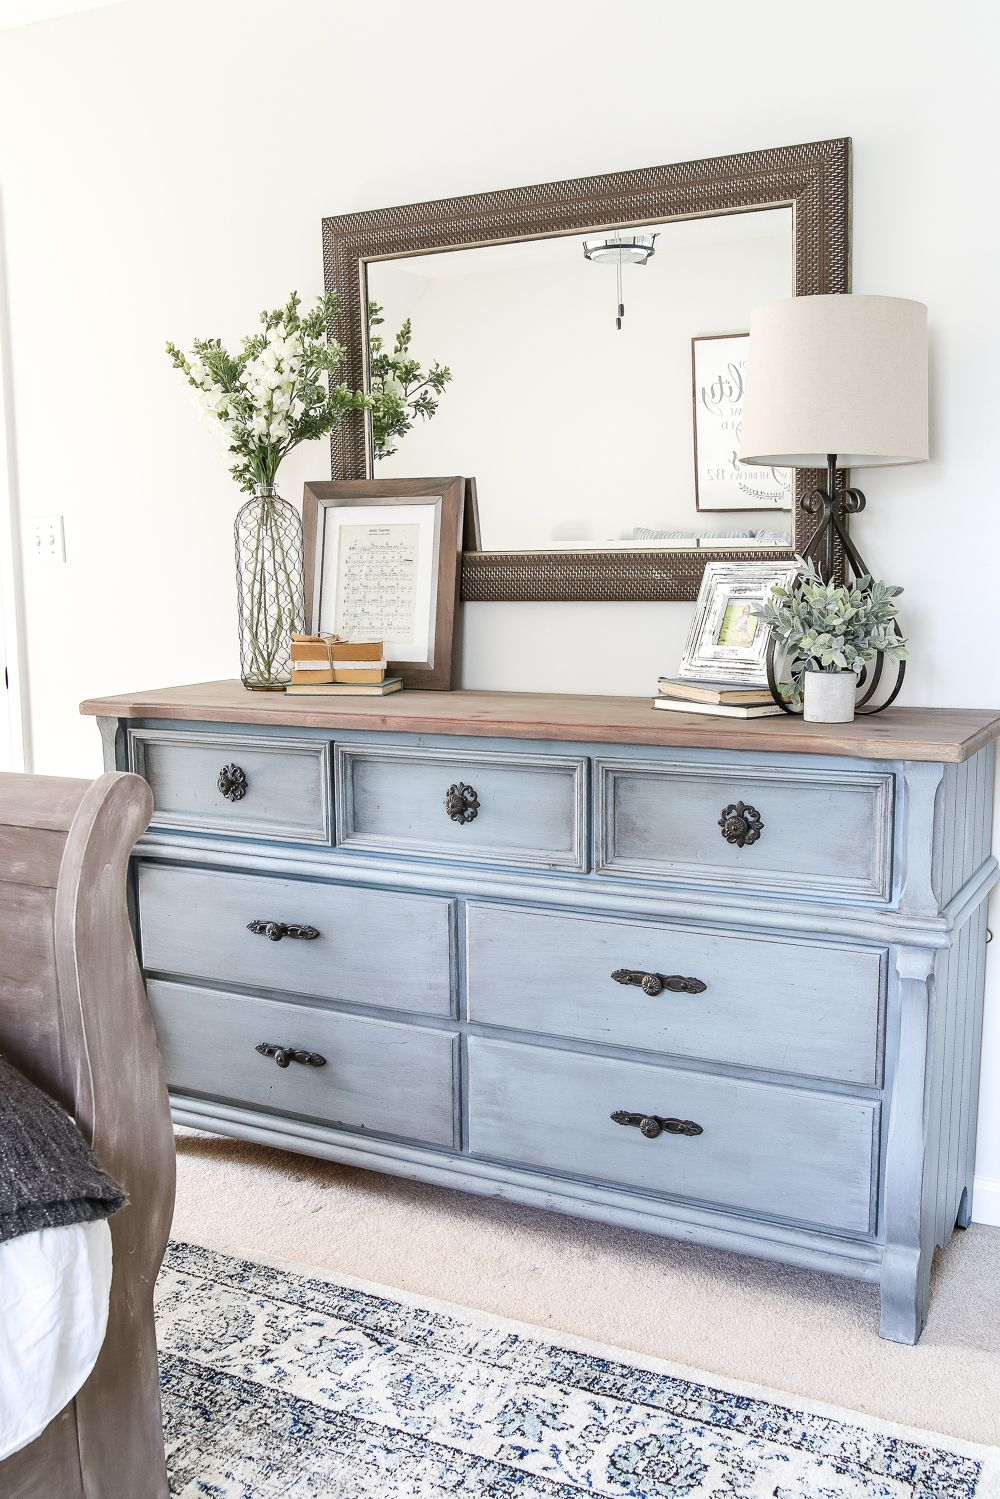 Cottage style bedroom furniture Modern Blue Cottage Style Guest Bedroom Makeover Blesserhousecom Dark And Dated Guest Bedroom Gets Cottage Style Makeover With Serene Shades Of Blue Using Pinterest Blue Cottage Style Guest Bedroom Makeover Reveal Bhi Villa Dreams